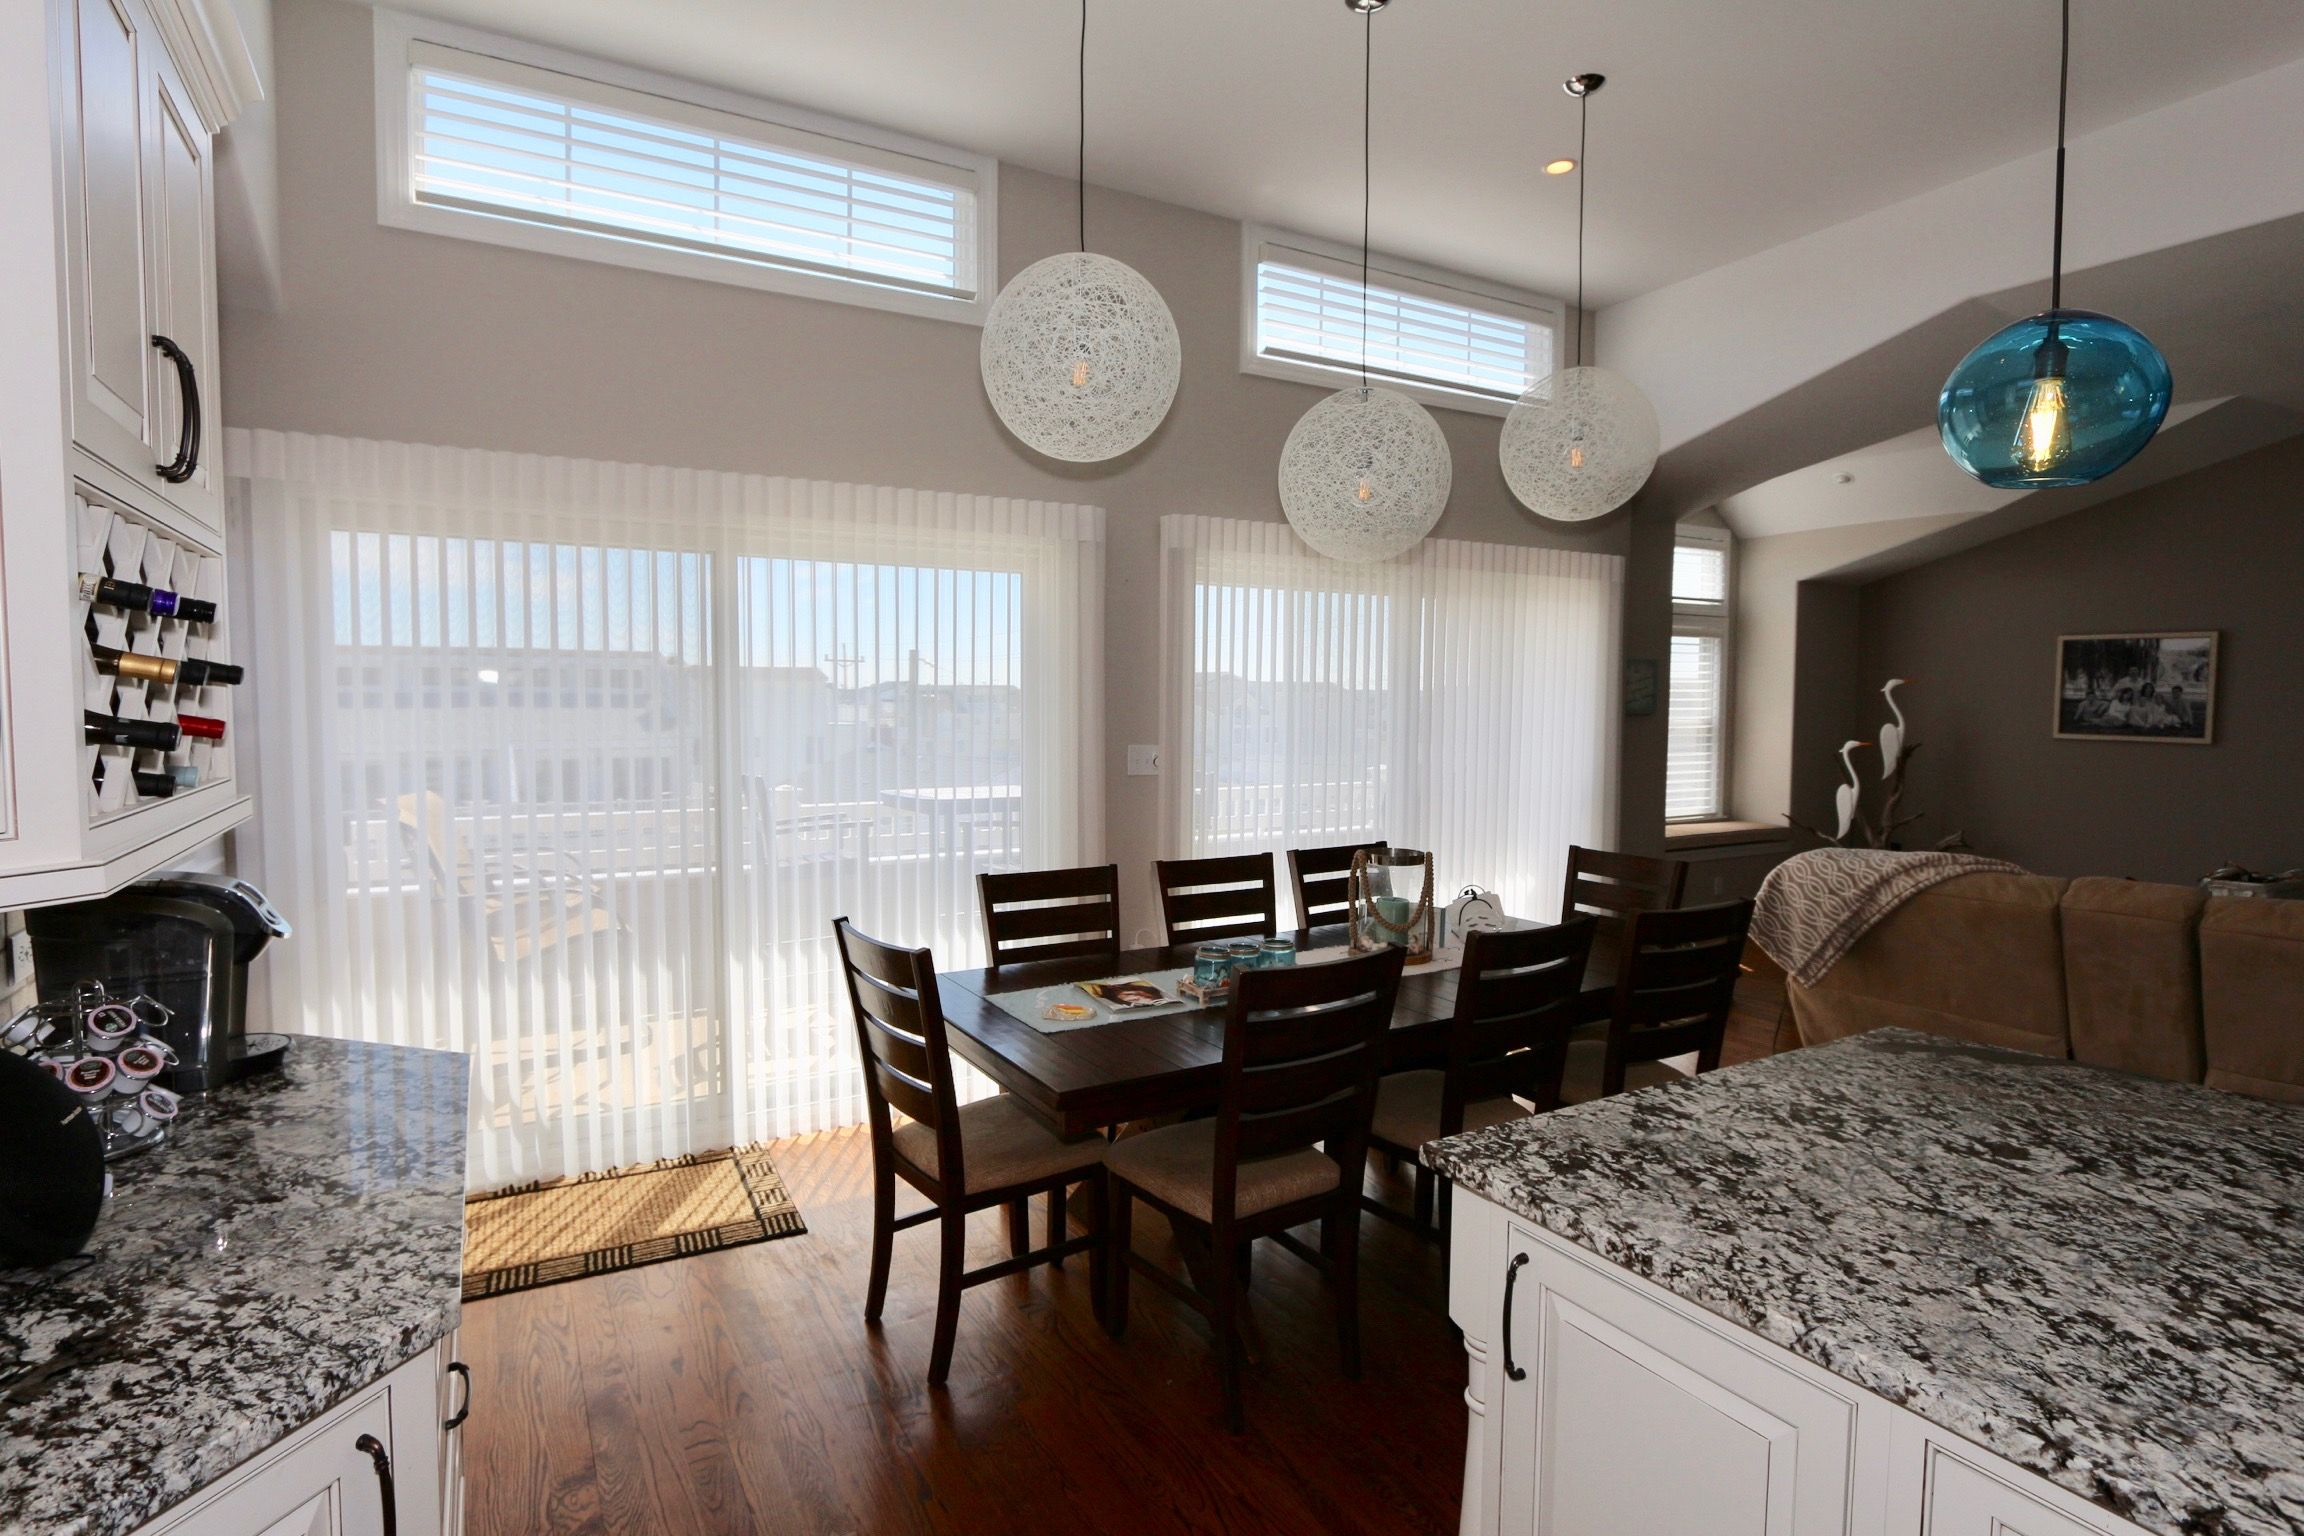 Dont Lose That View Luminette Privacy Sheers Are The Perfect